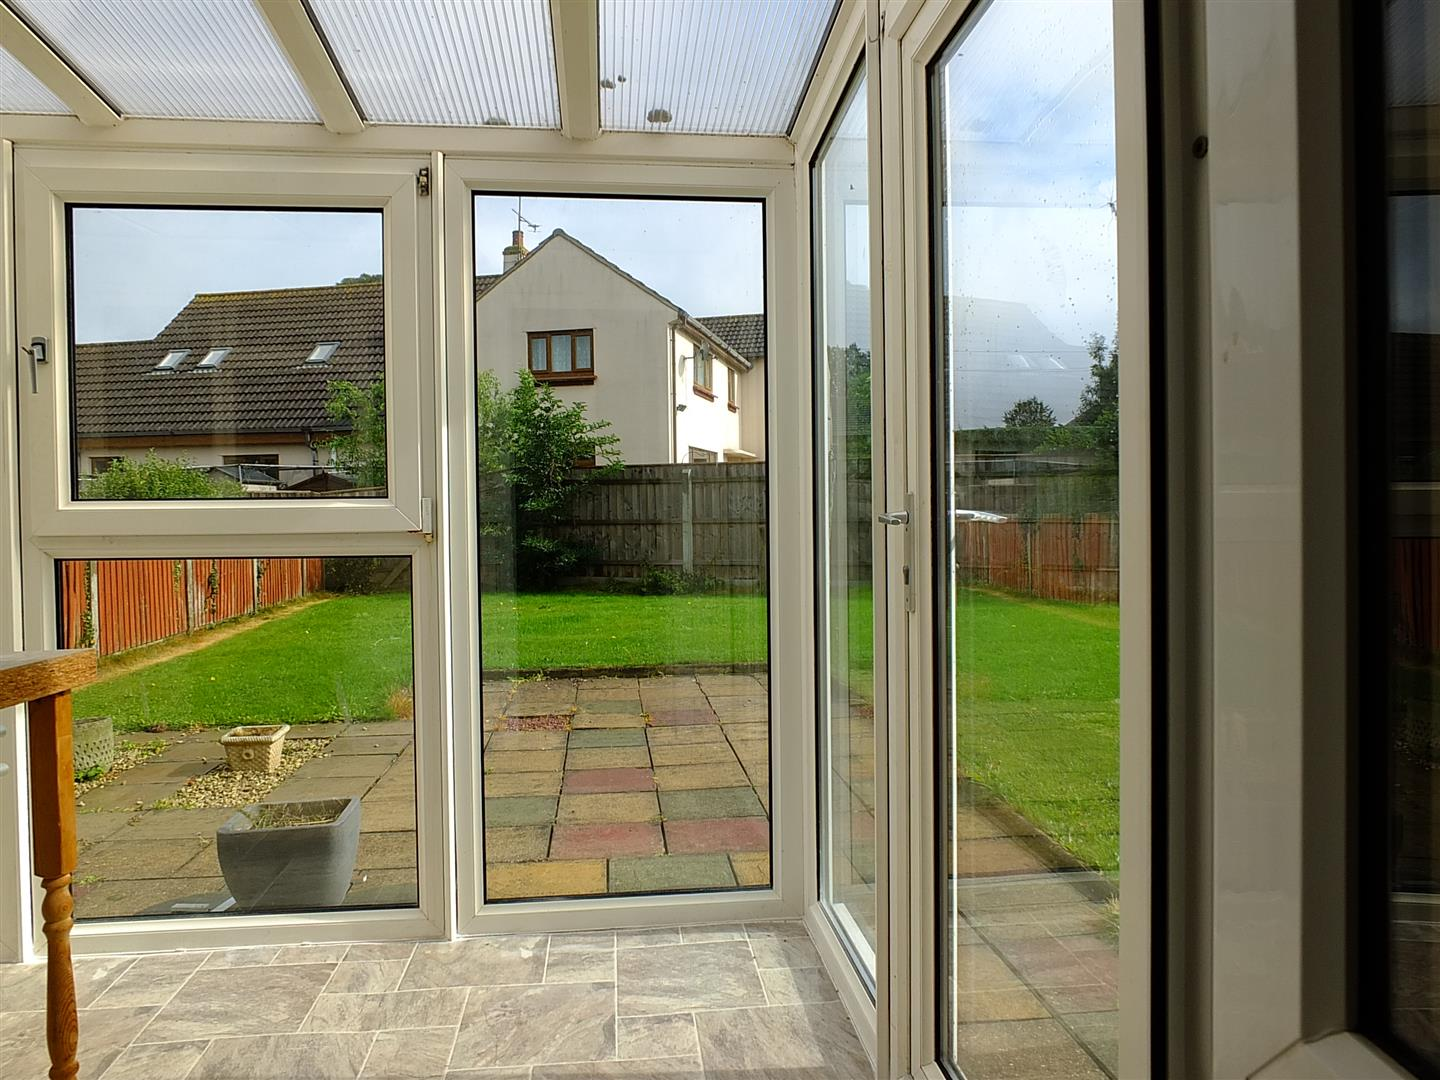 3 bed detached bungalow to rent in Long Sutton Spalding, PE12 9LY 8